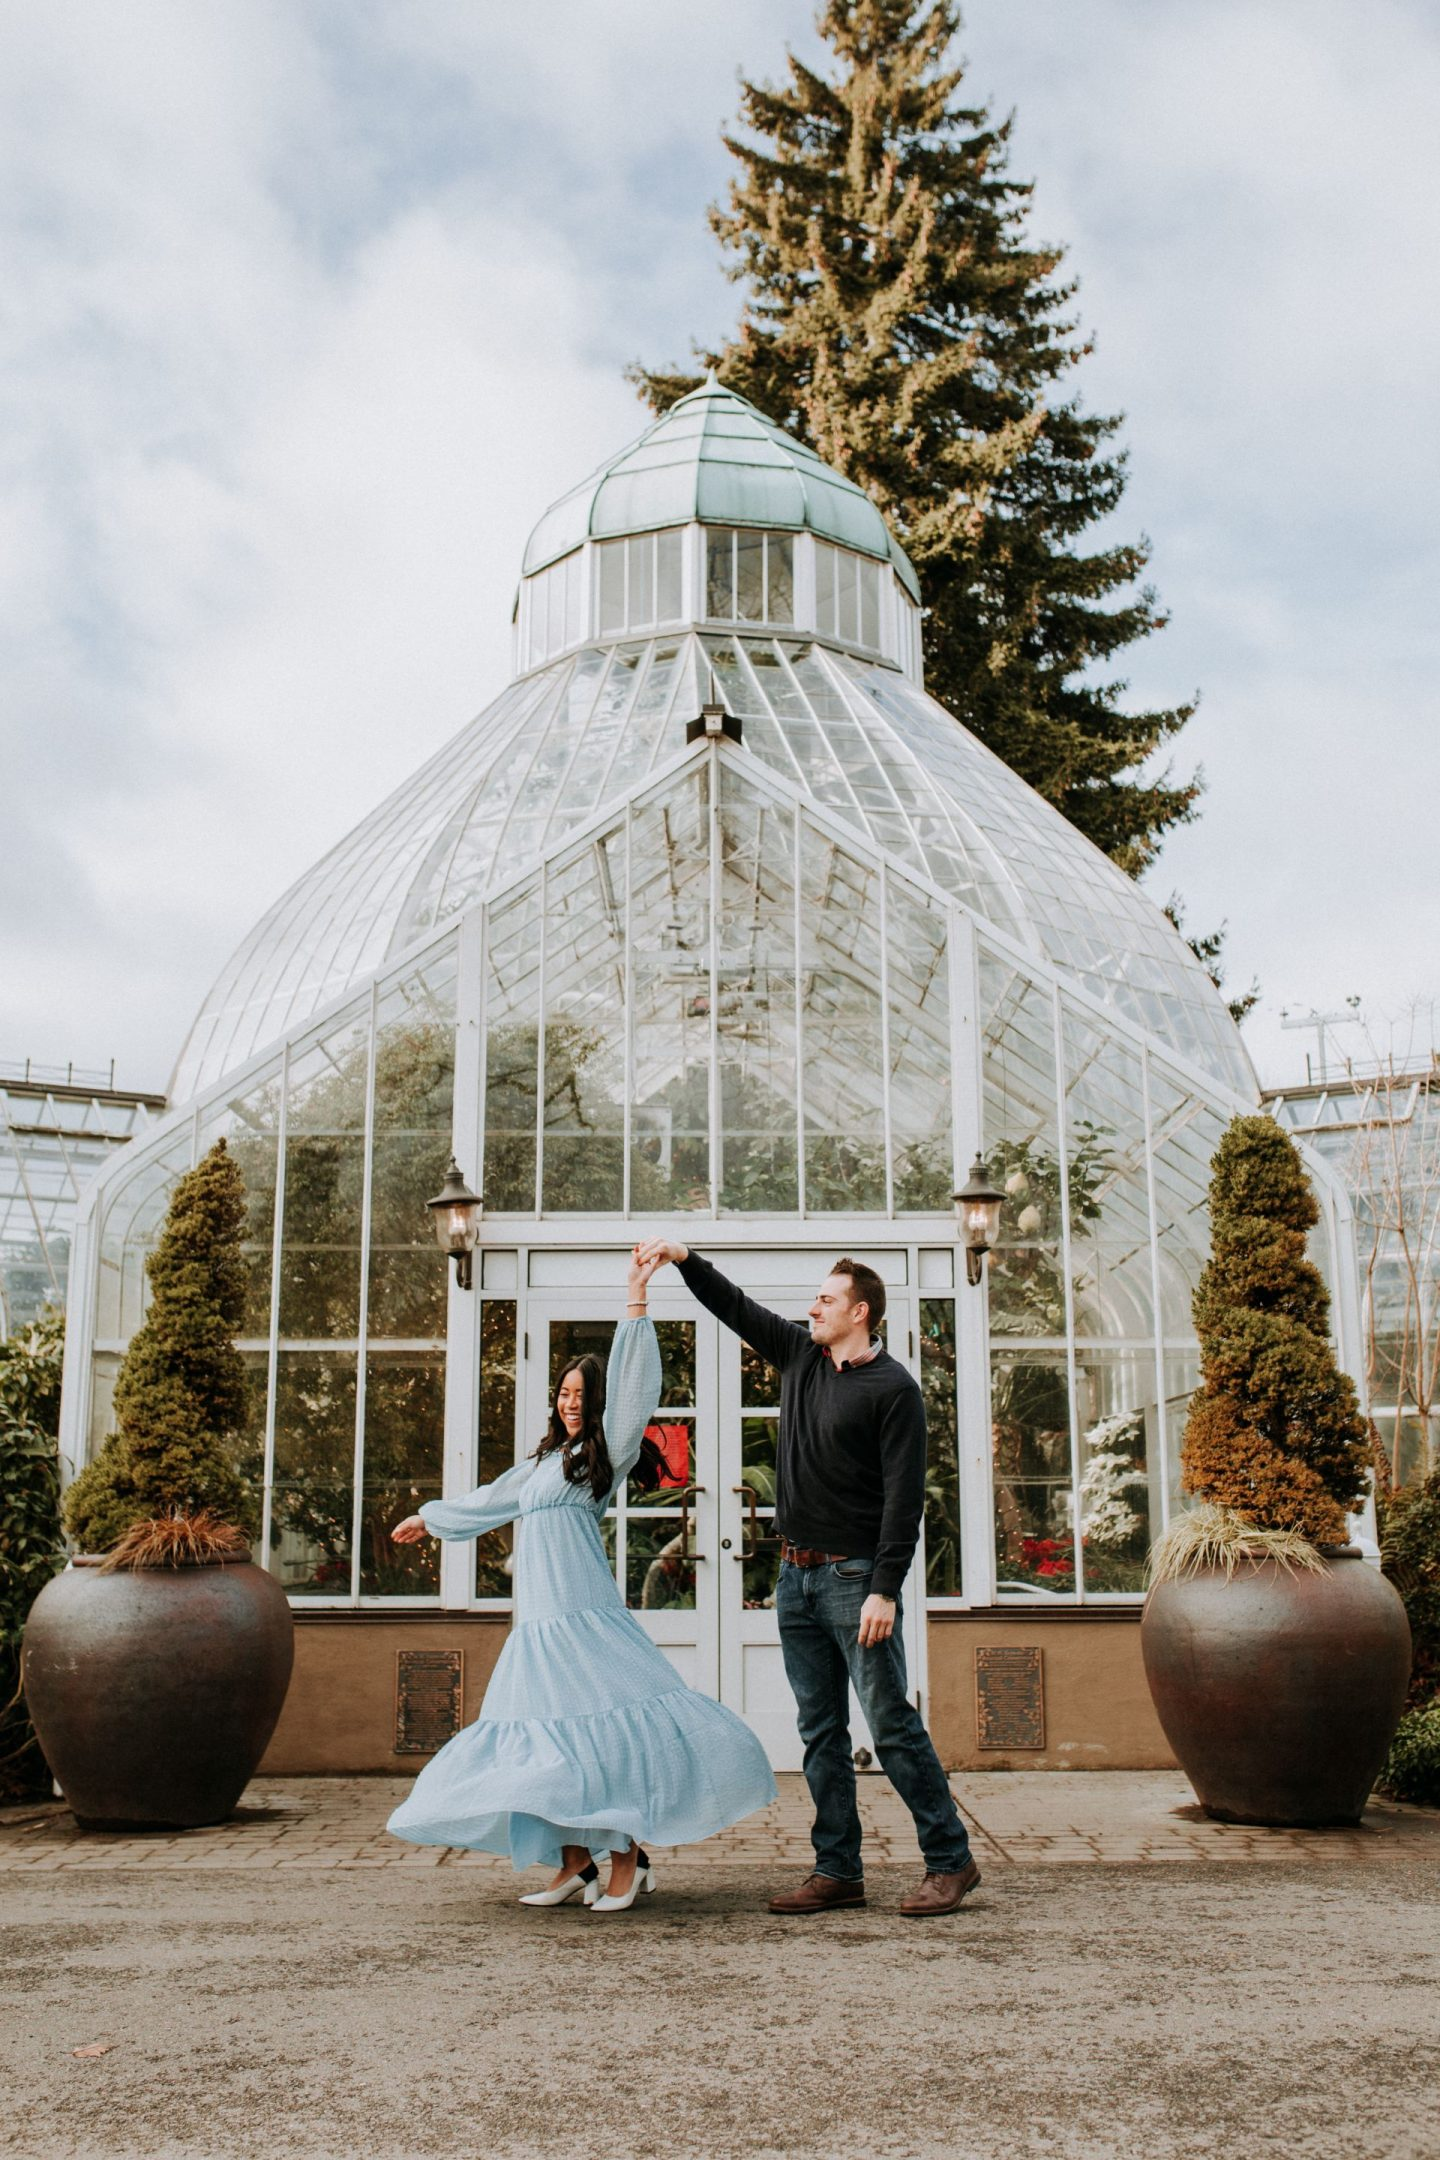 Engagement Photo Shoot Ideas - Tacoma Washington - Tacoma Weddings - Seattle Weddings - PNW Bride - PNW weddings